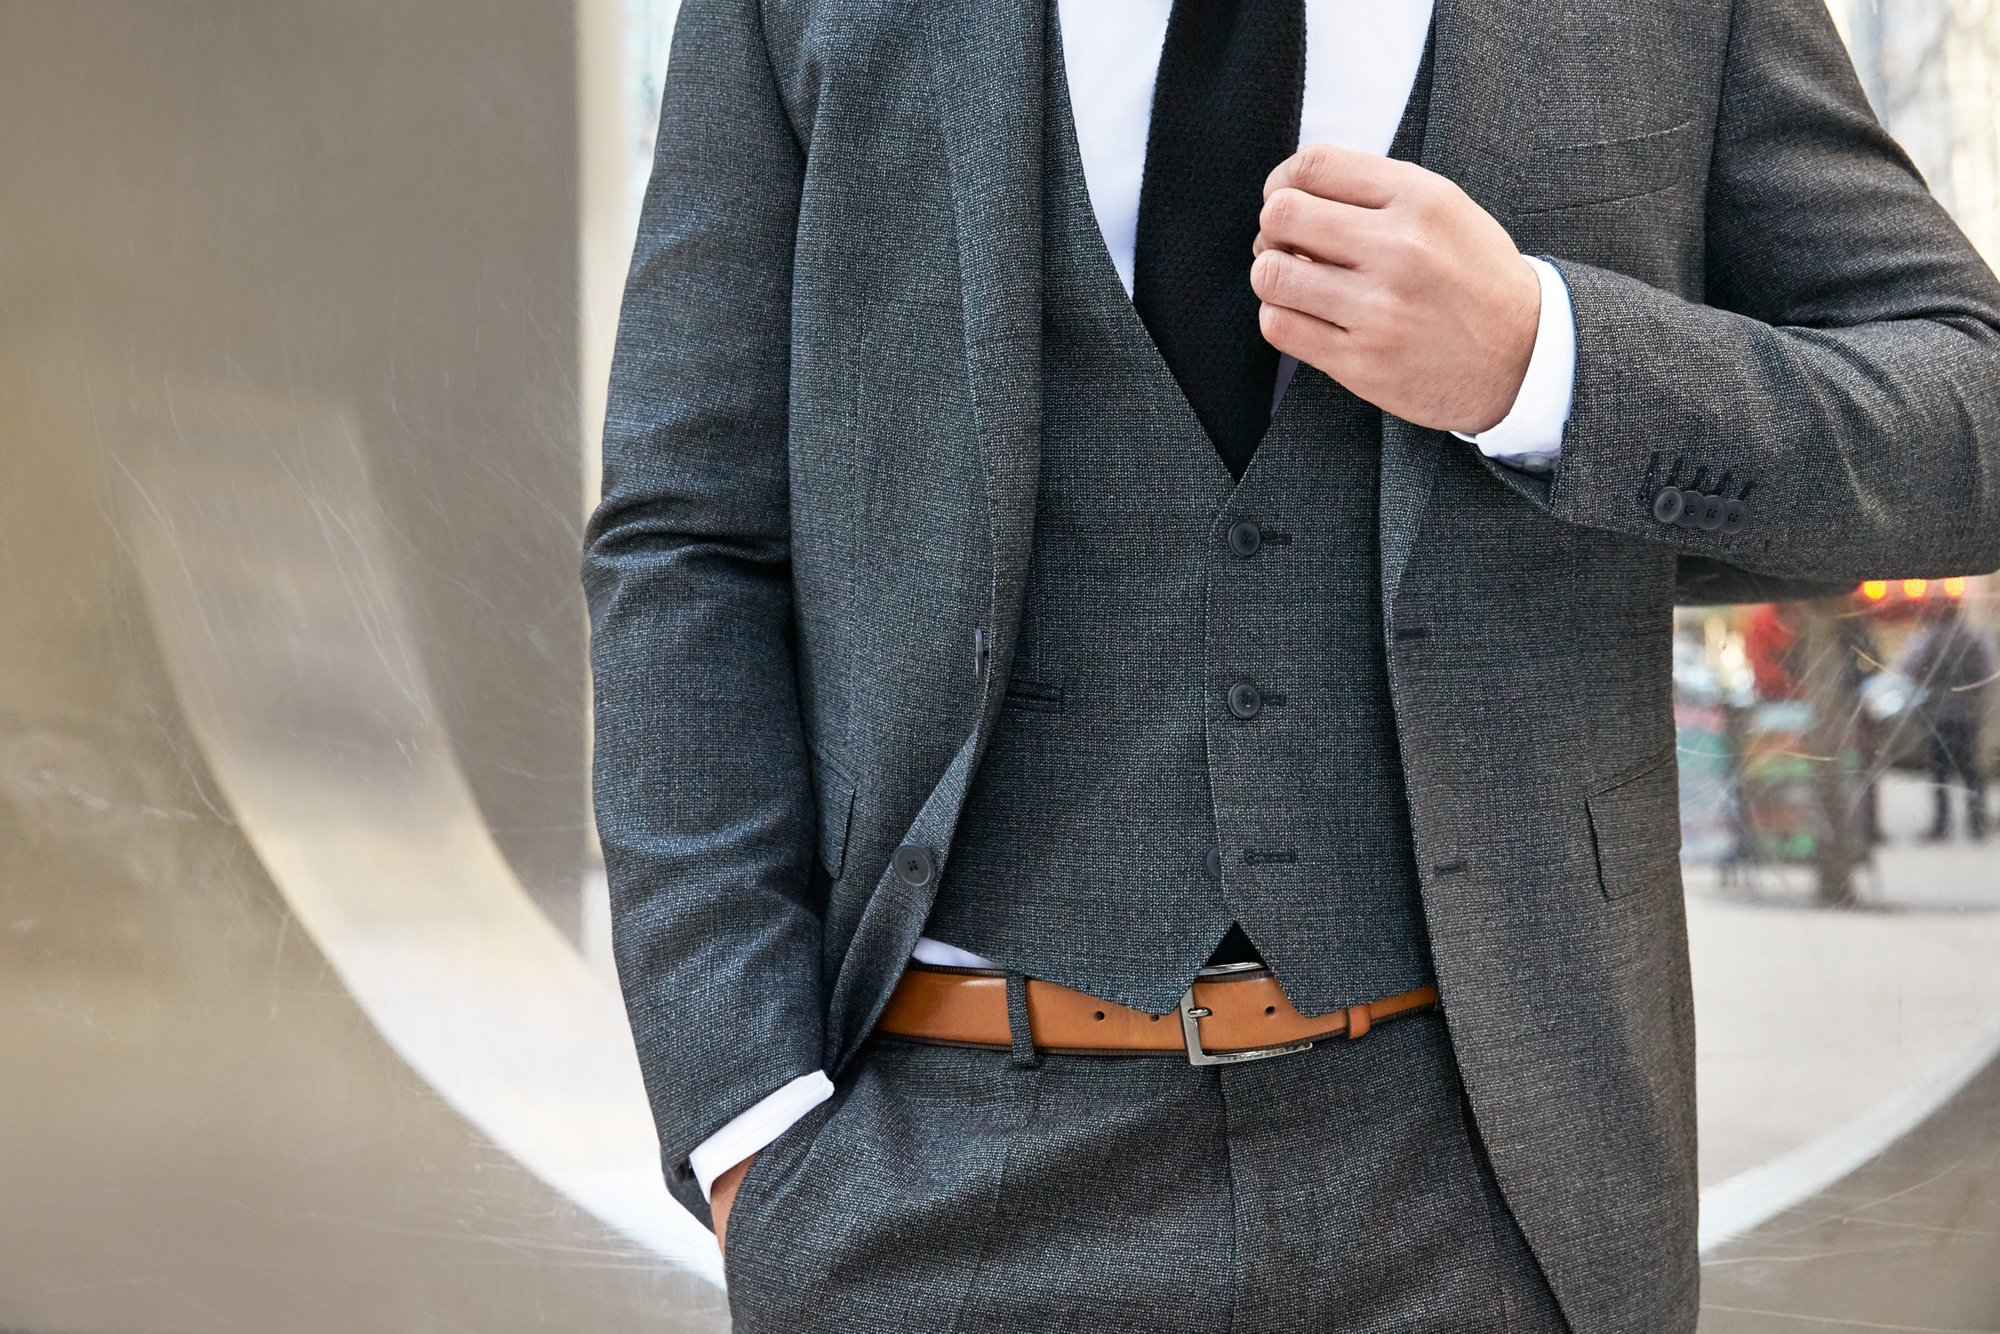 Grey suit and brown leather belt by BOSS